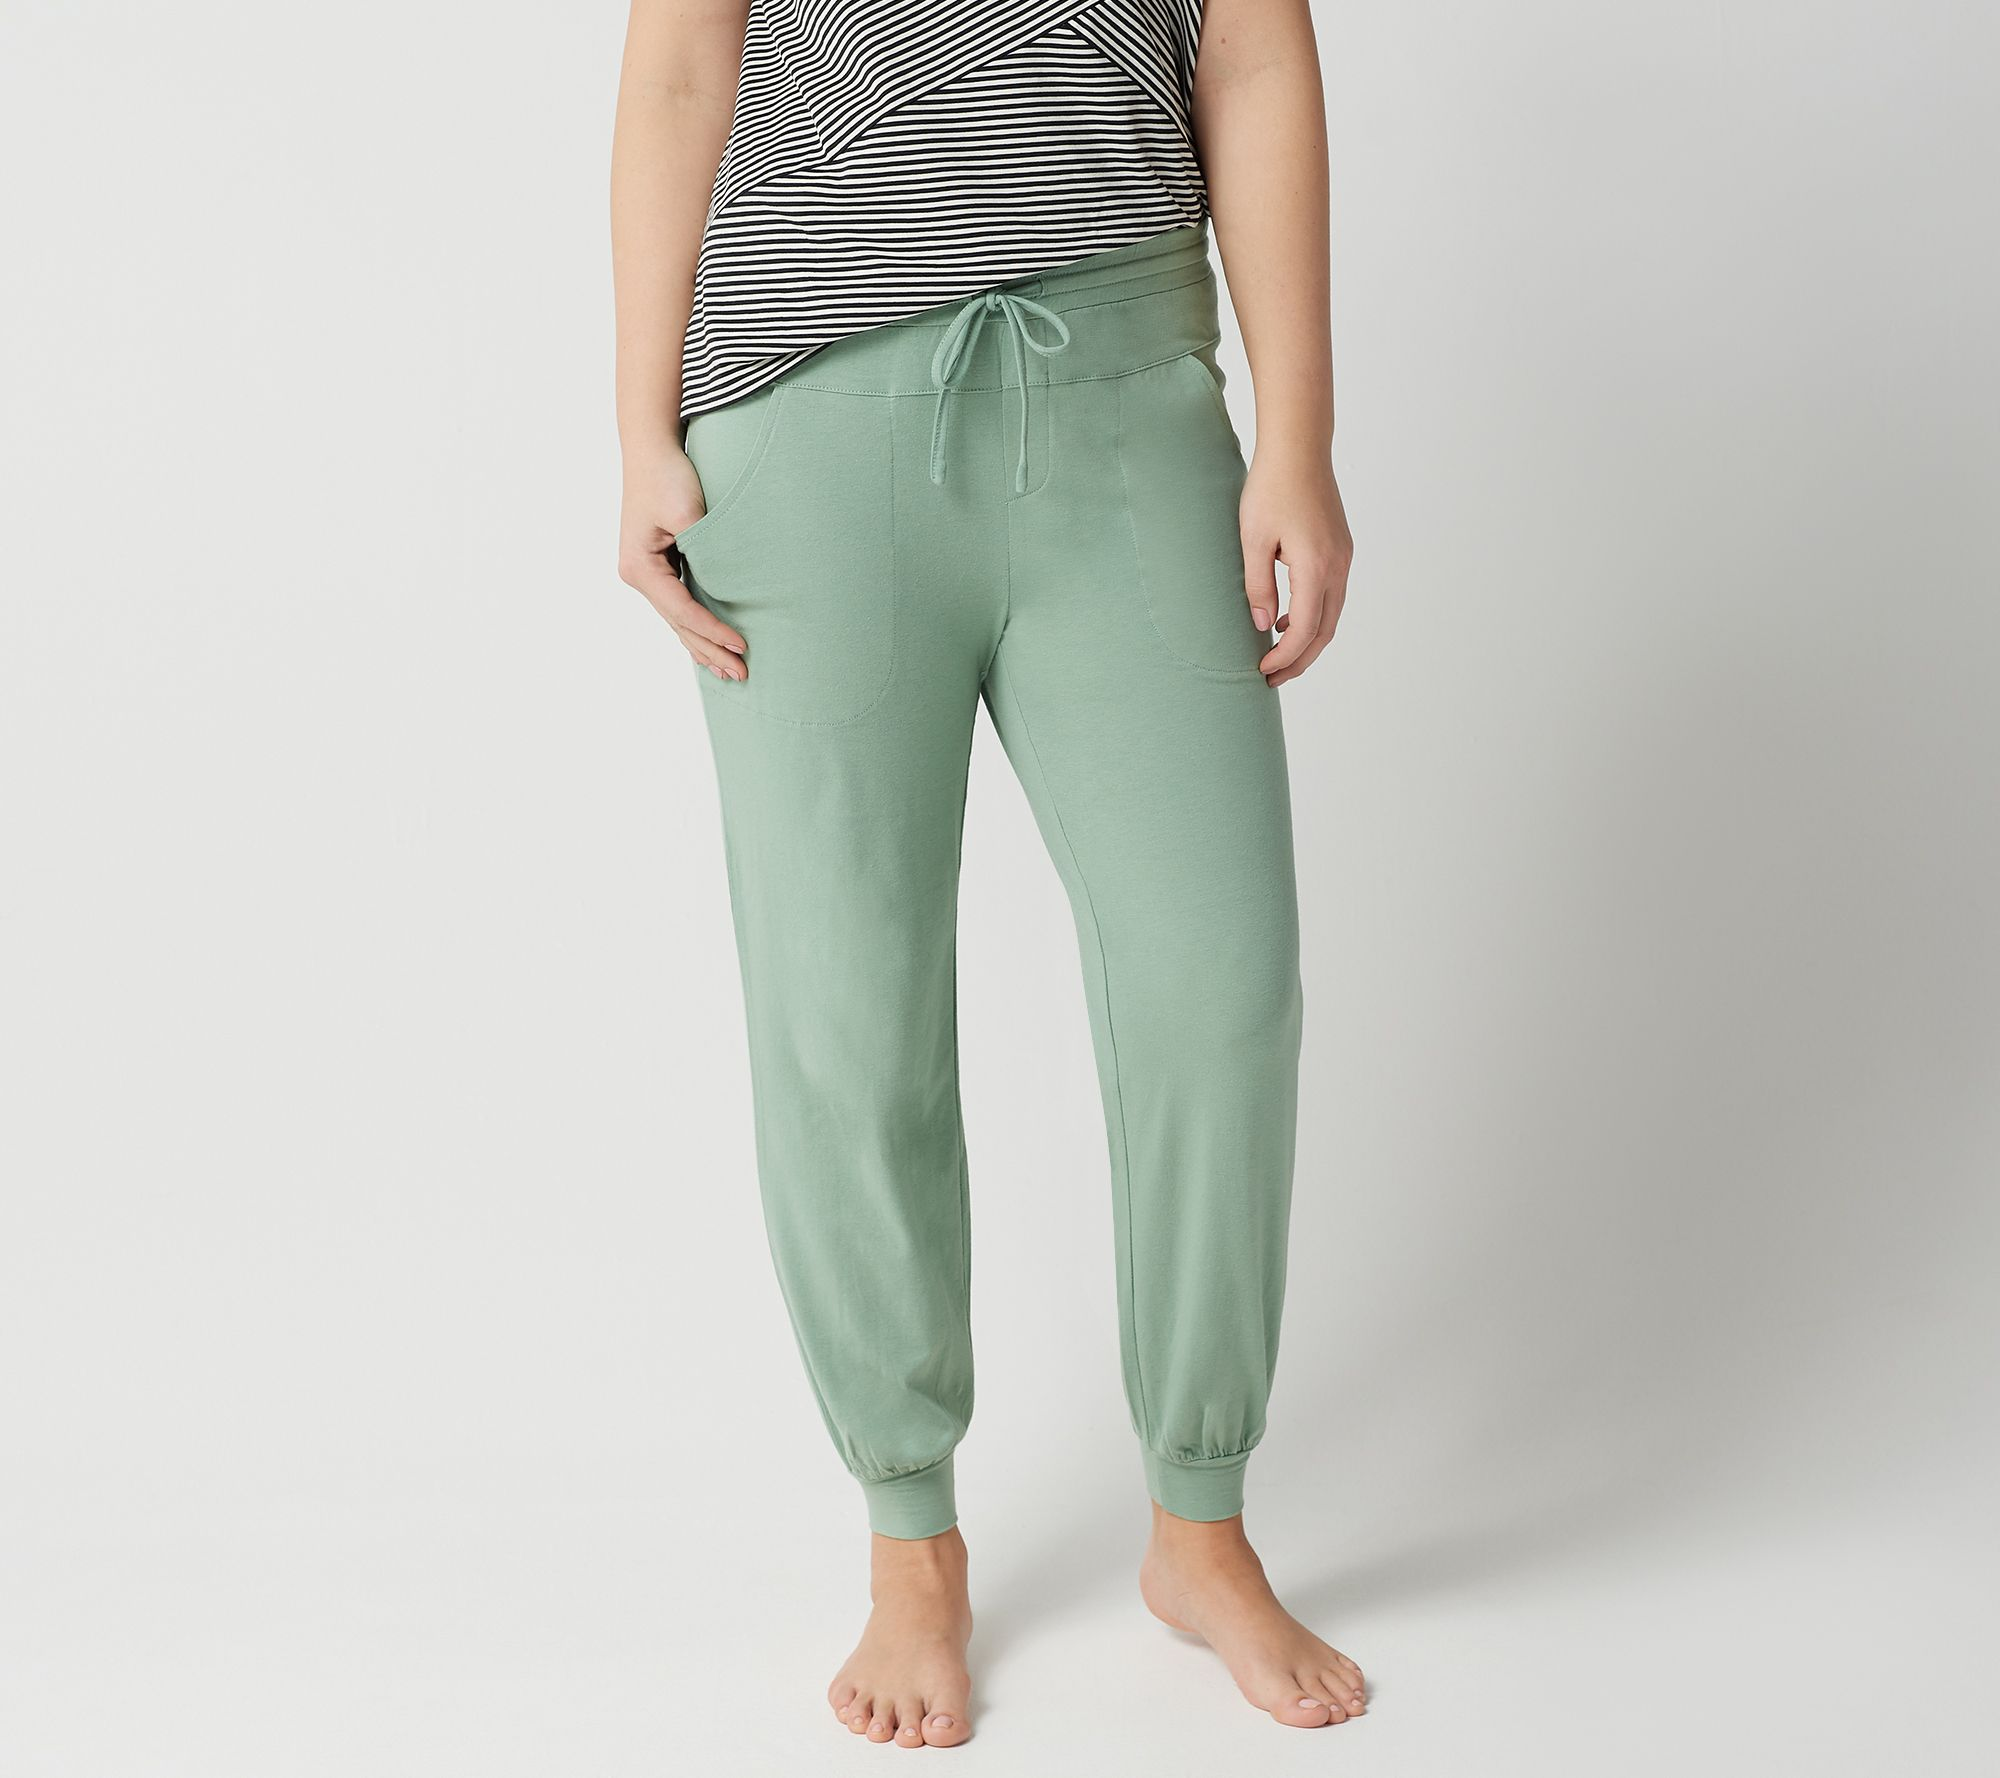 66acb2fb25afe AnyBody Petite Cozy Knit Jogger Pants - Page 1 — QVC.com